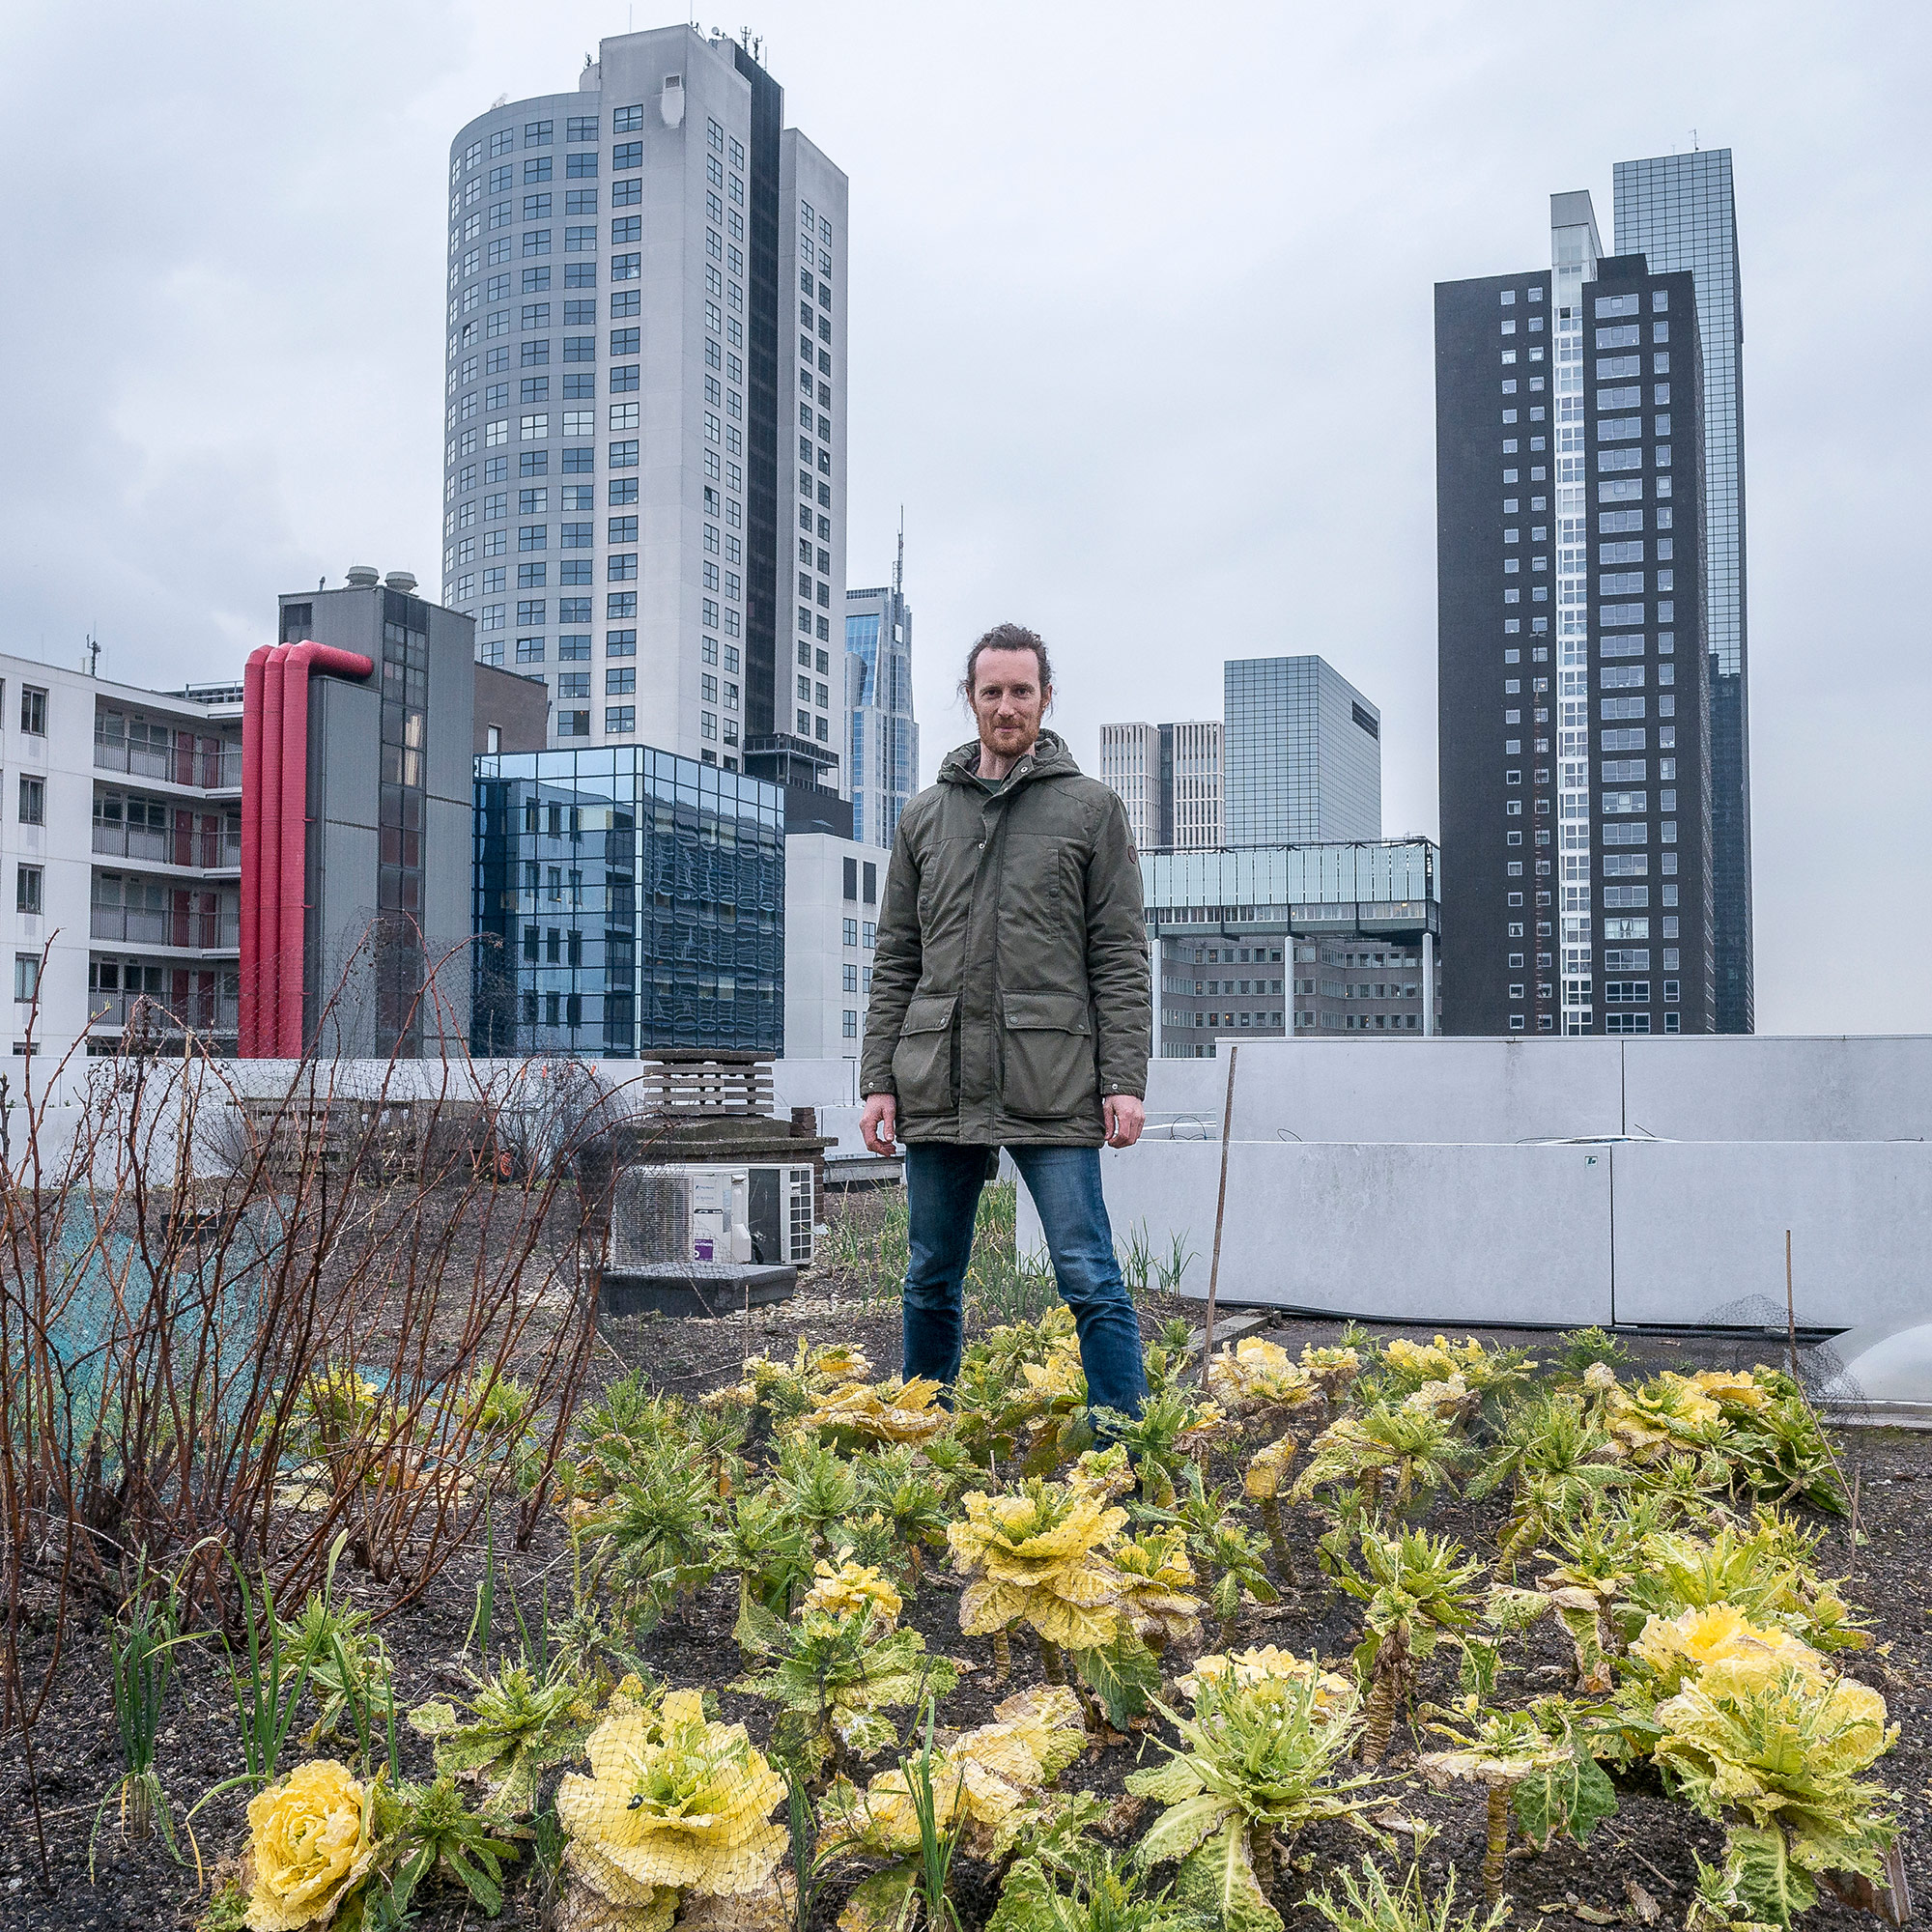 Wouter Bauman is a beekeeper and rooftop farmer at Dakakker (Roof­Acre), the first and biggest city agricultural roof of Europe. It's located atop the Schieblock building in downtown Rotterdam. (Photo by Joris van Gennip/GroundTruth)